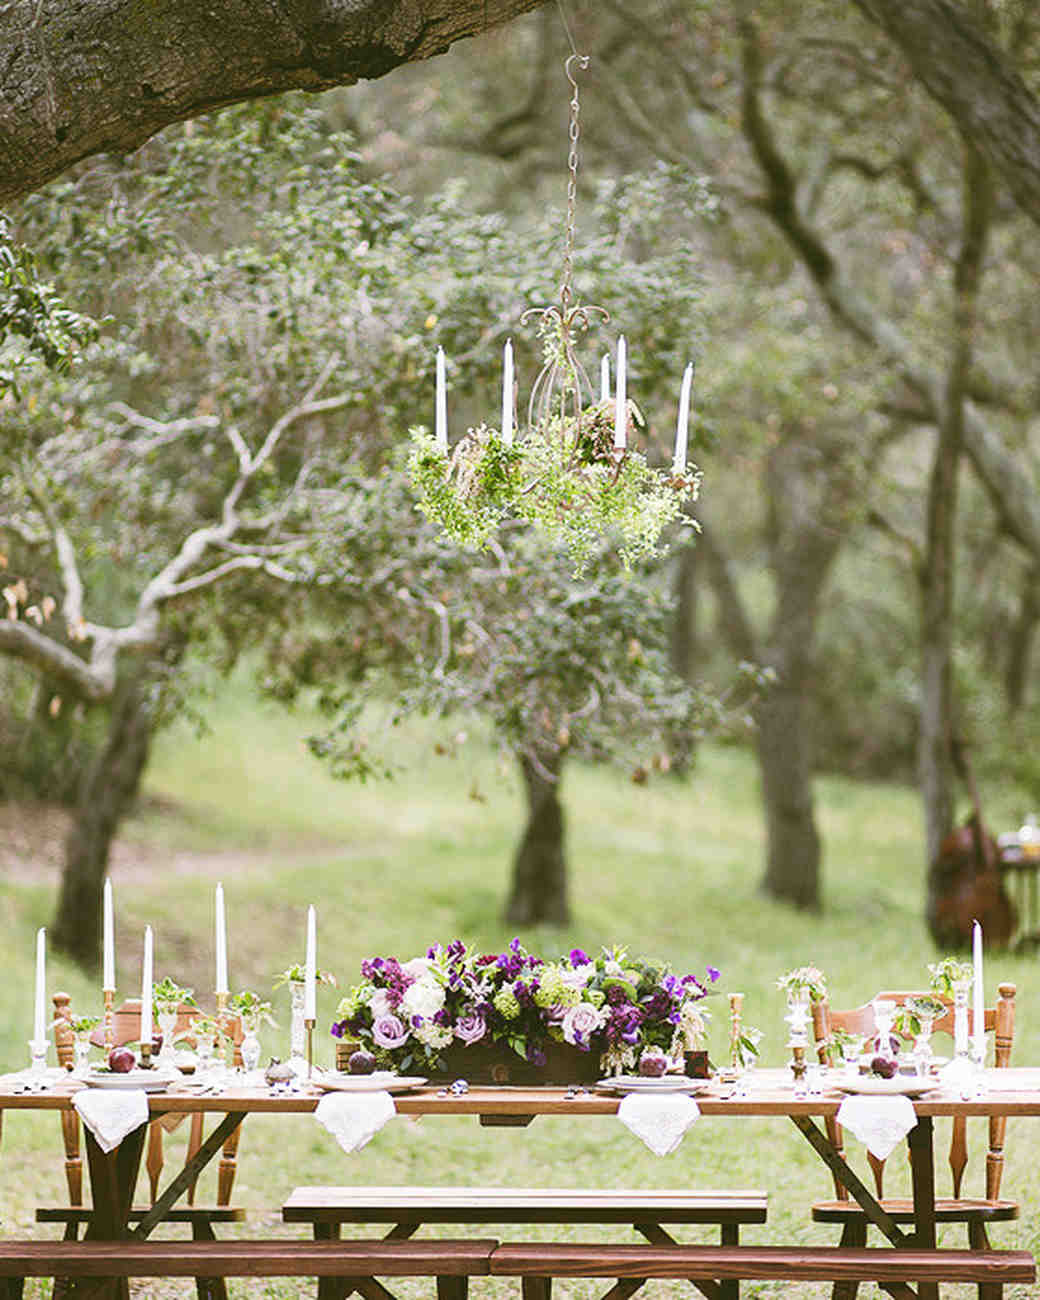 Picnic Tables at Garden Wedding Reception